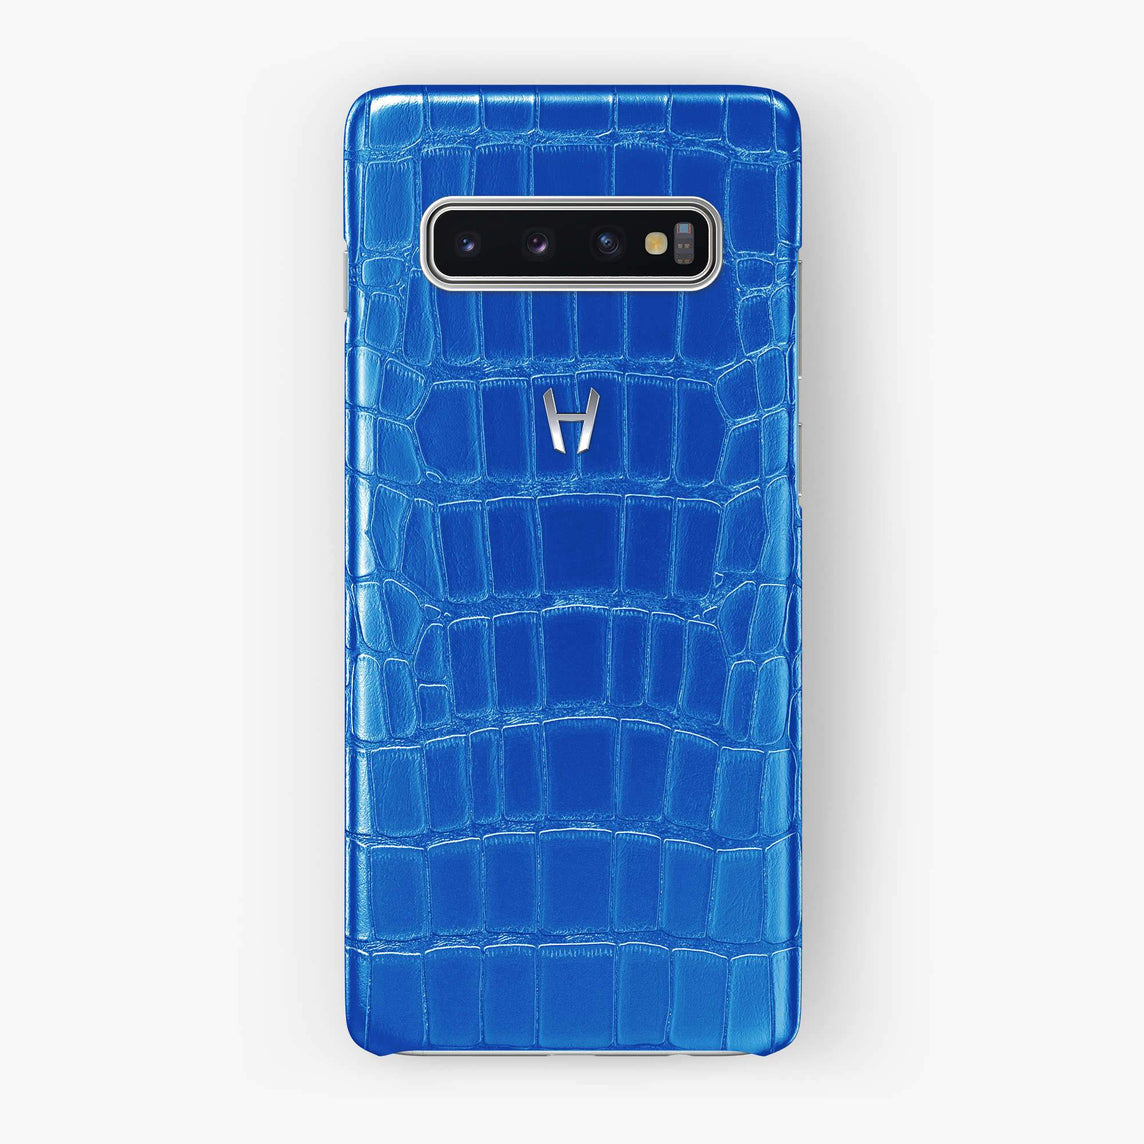 Alligator Case Samsung S10 | Peony Blue - Stainless Steel